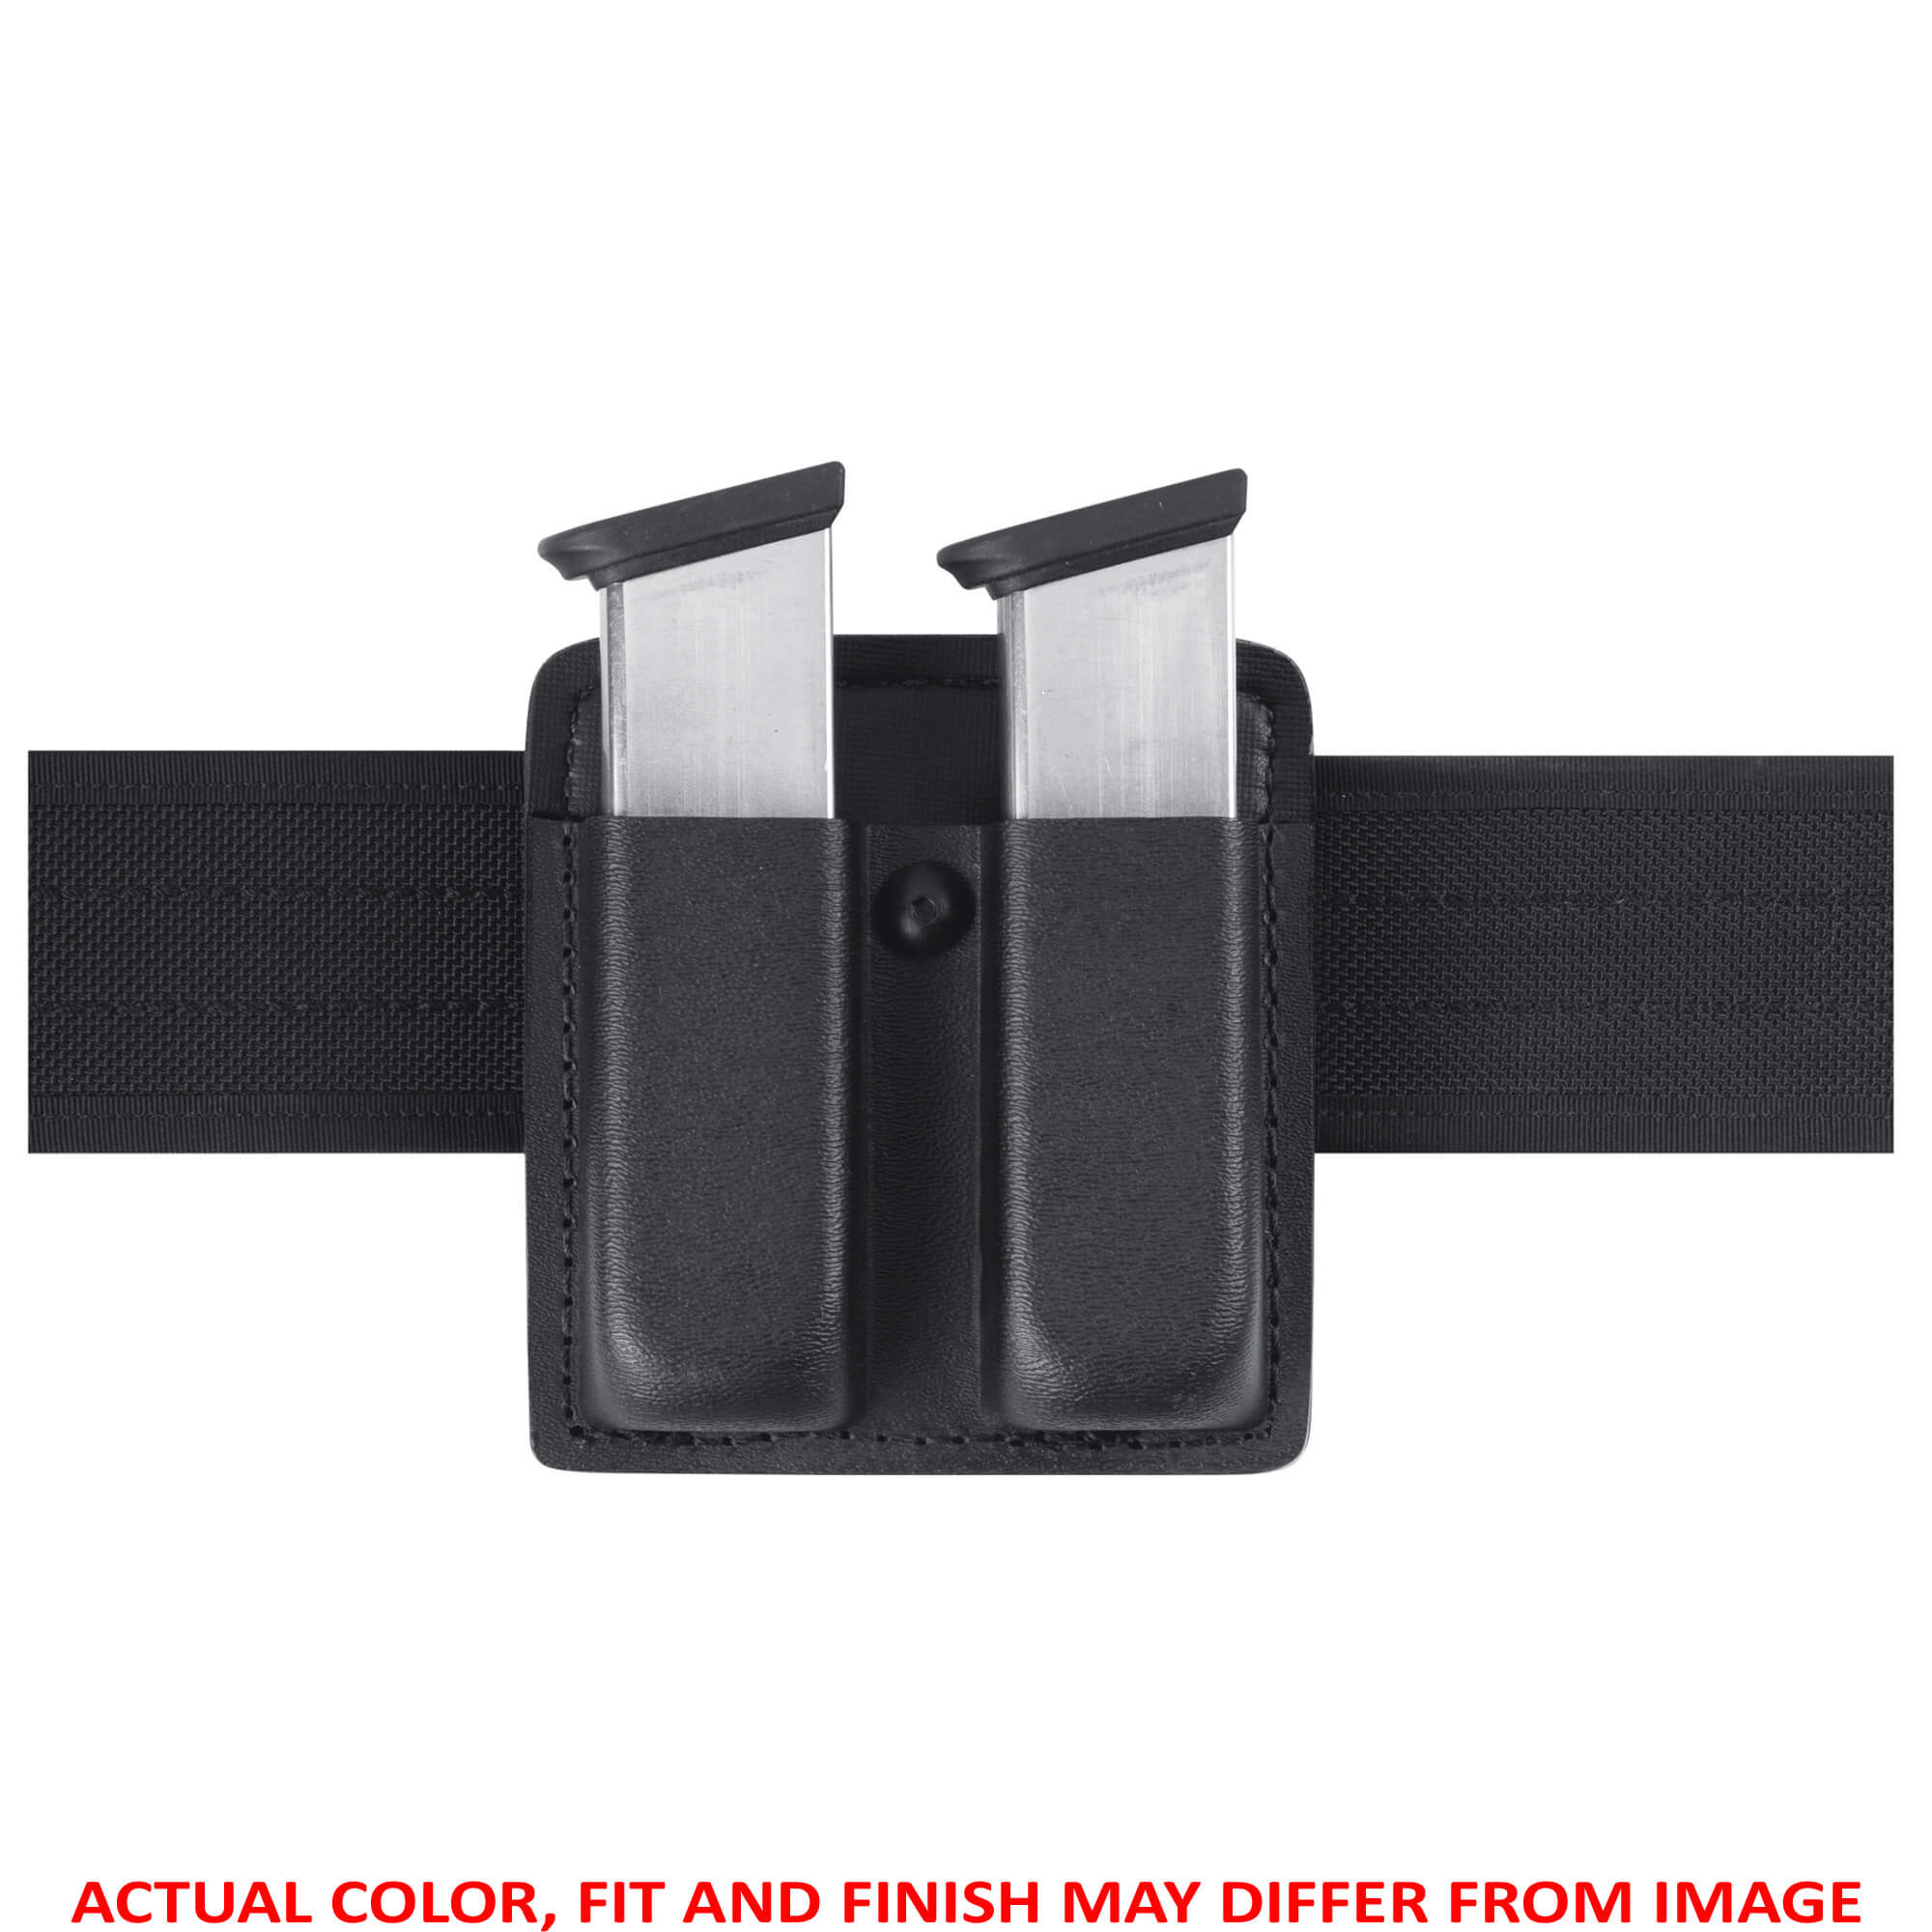 "The Model 73 is an open top double magazine pouch designed to carry two magazines of ammunition on a 2.25"" (58mm) duty belt. It features both vertical and horizontal carry on the belt and secures the magazine in a butt-up position on the belt for easy access. A tension screw allows retention adjustment by the user. It is constructed of SafariLaminate."